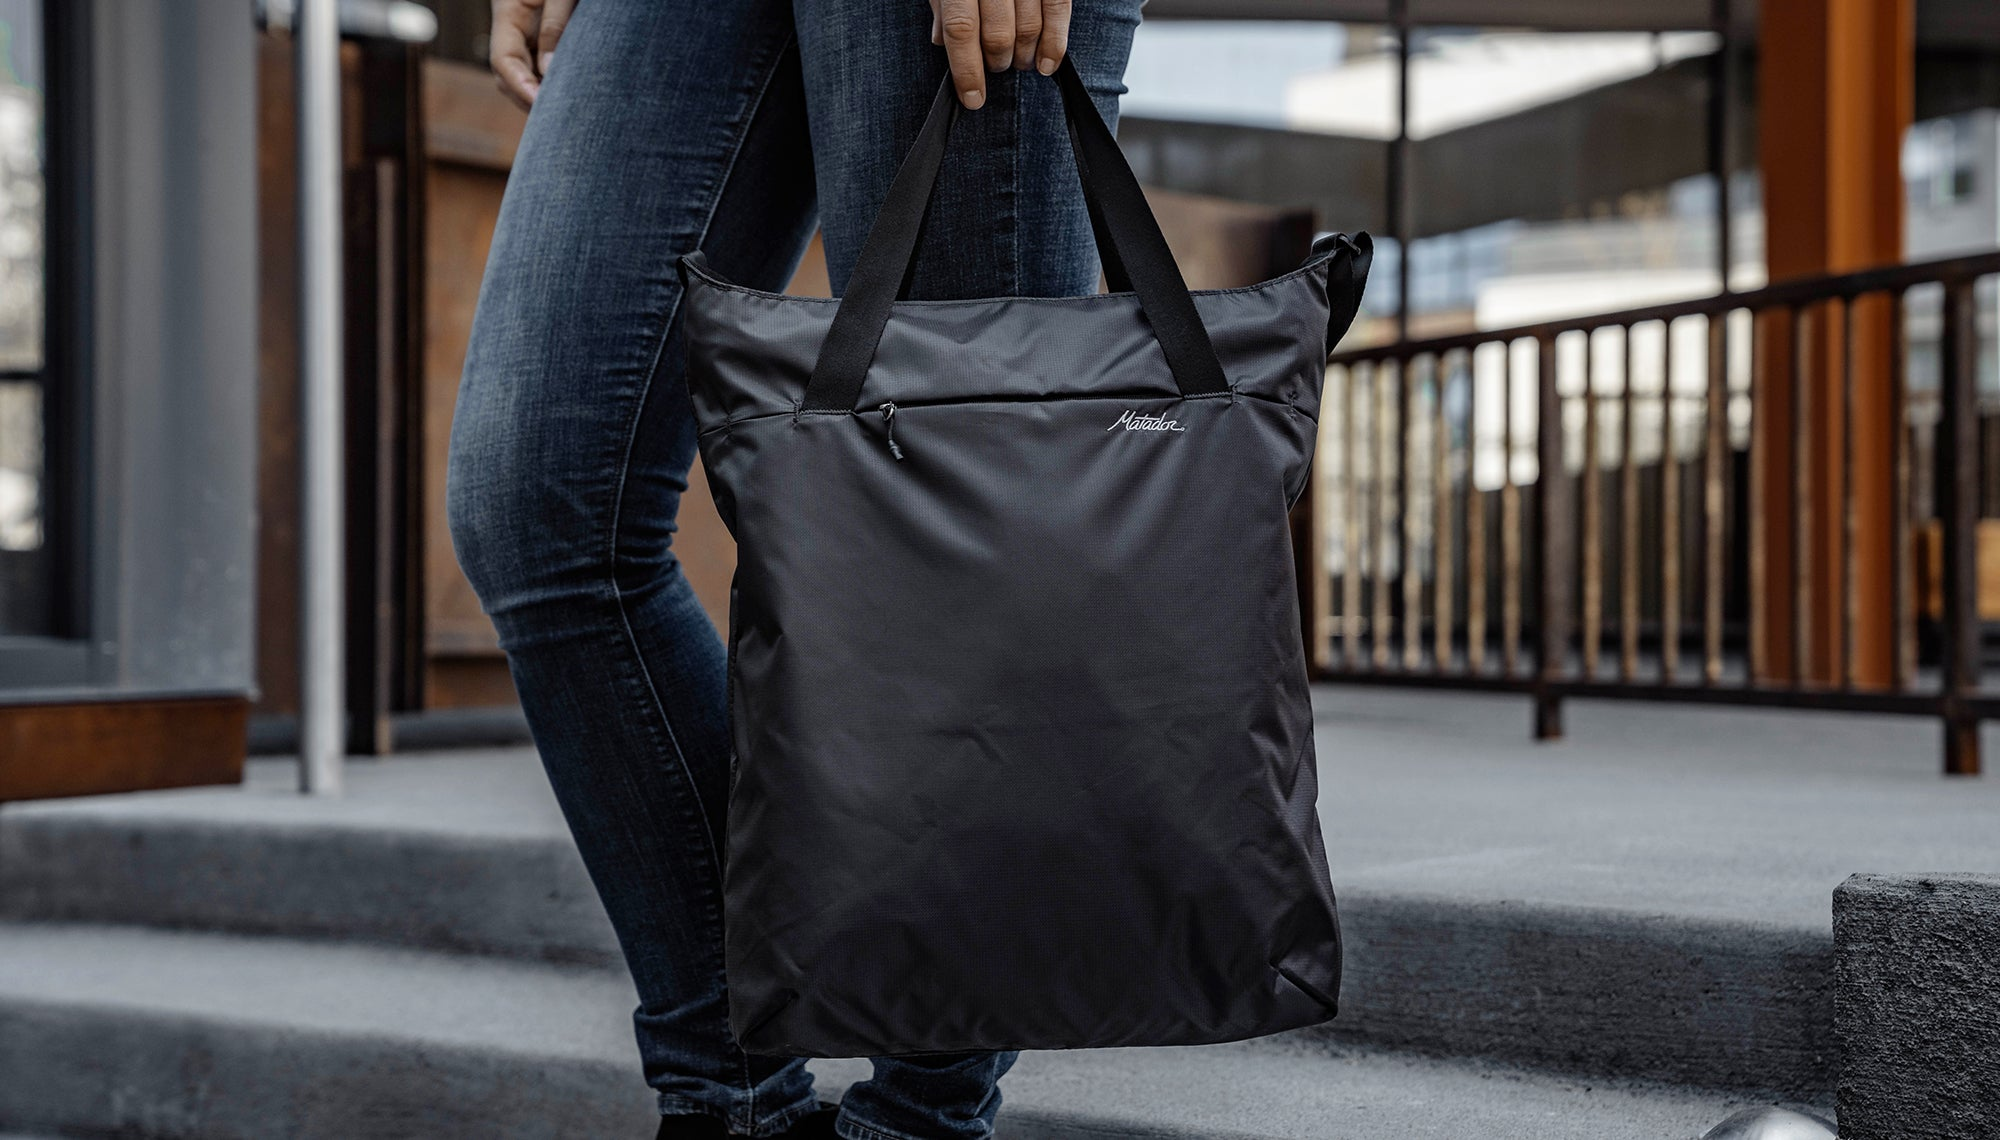 Woman in city, carrying tote by carry handles